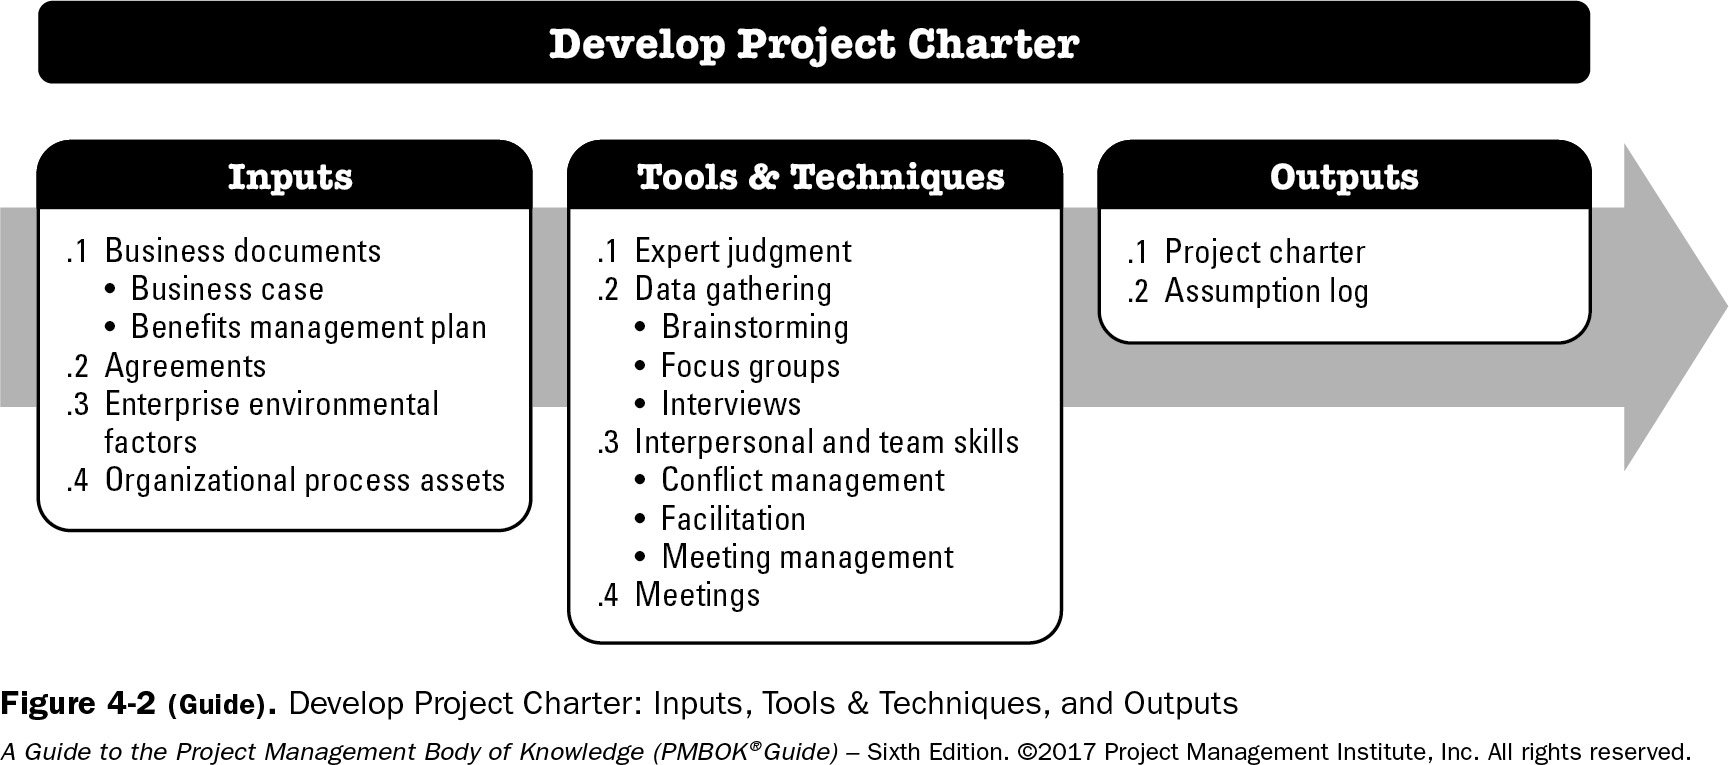 Inputs Tools Techniques and Outputs for Develop Project Charger